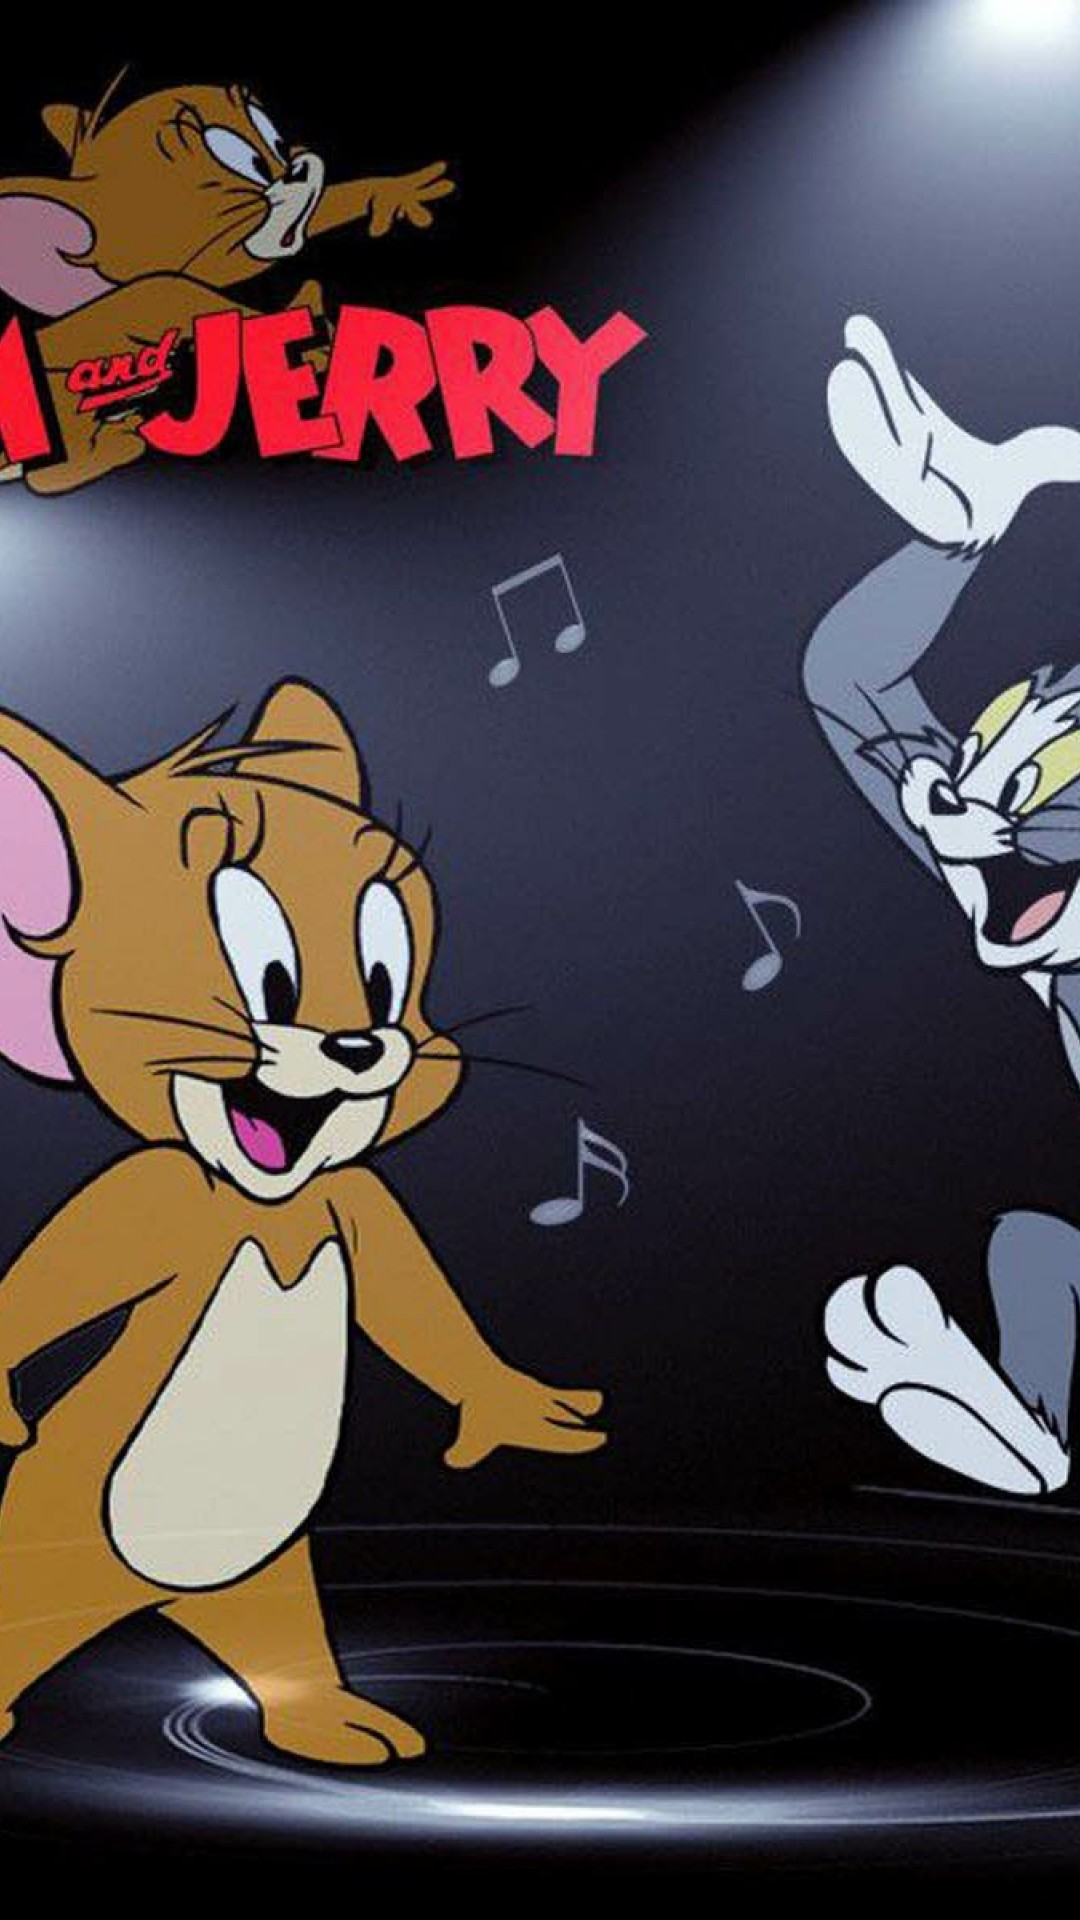 Supreme Girl Wallpaper Hd Tom Jerry Wallpapers 51 Images